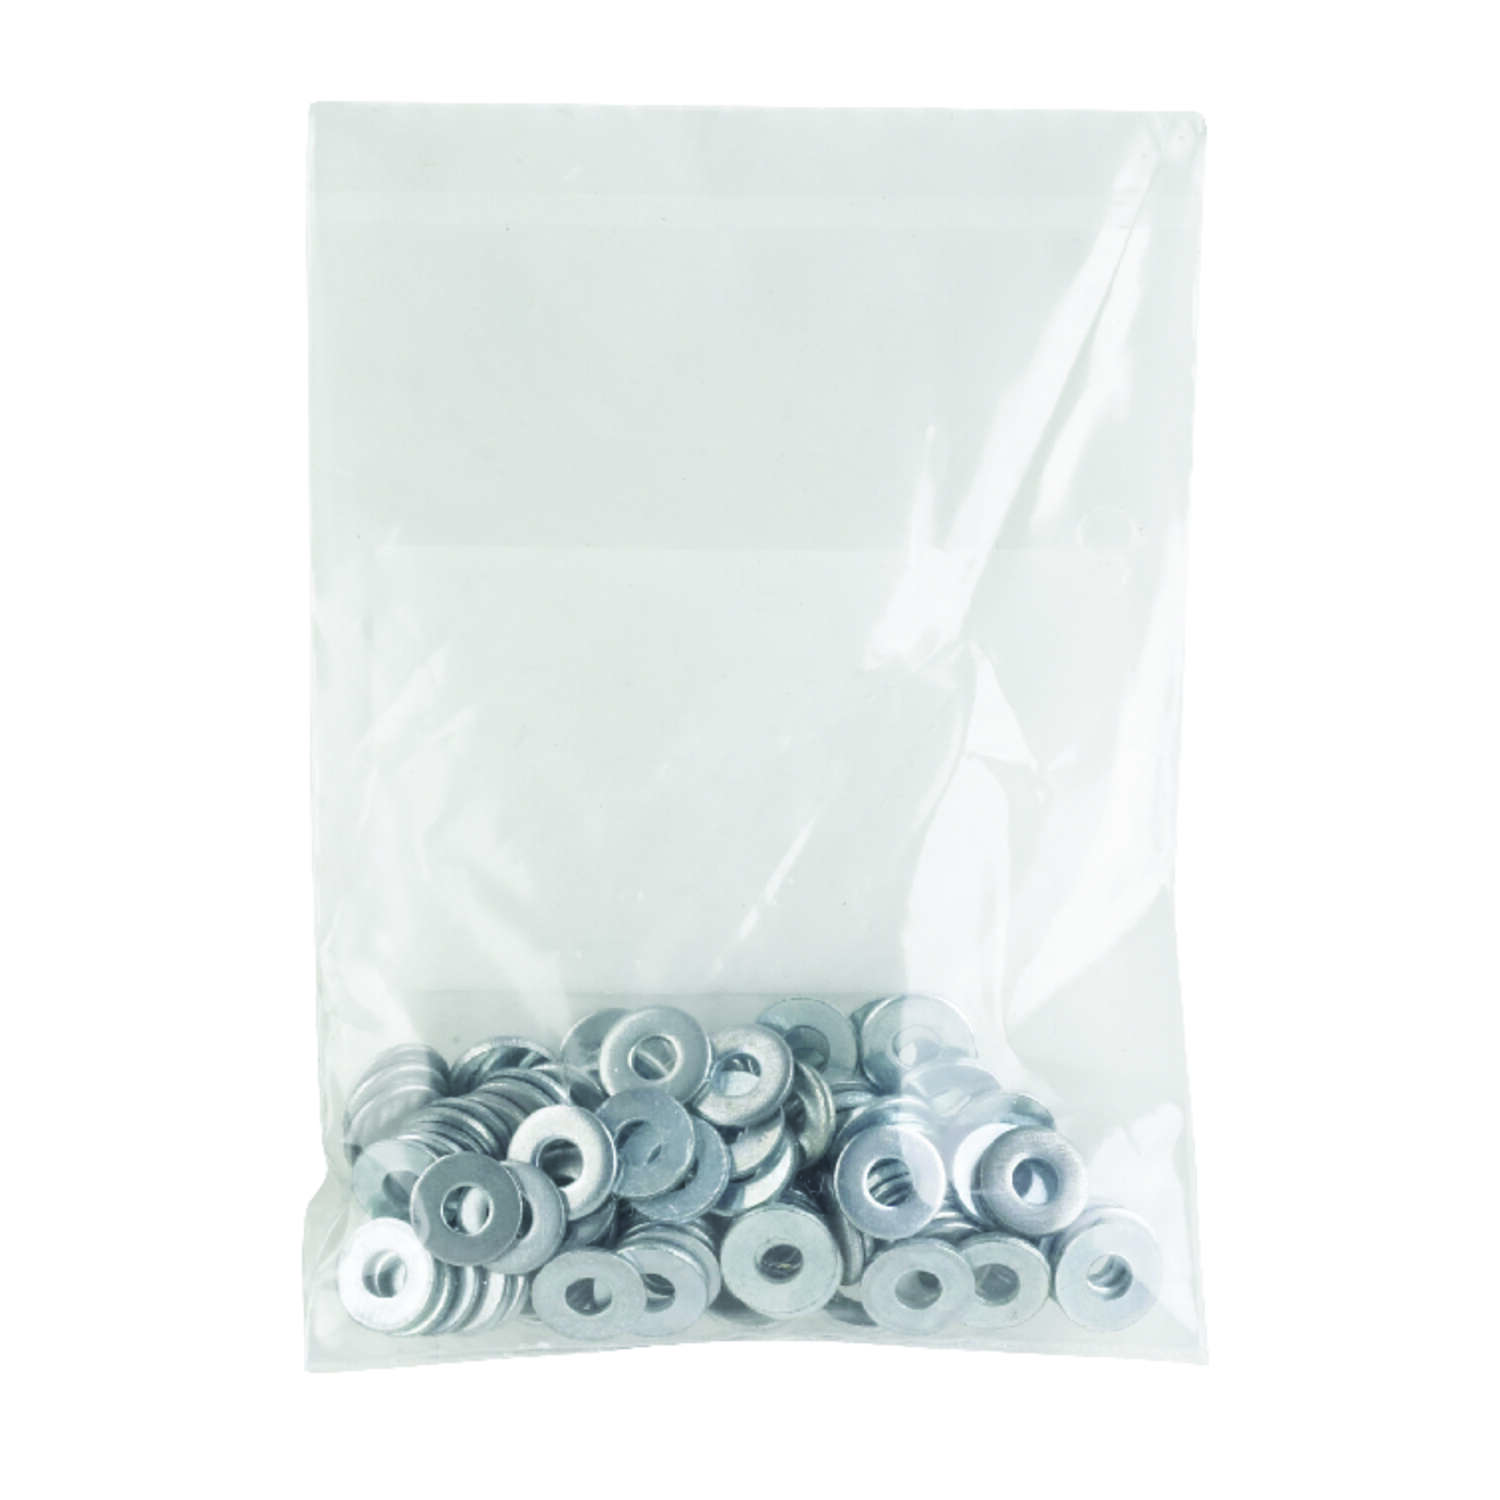 HILLMAN  Zinc-Plated  Steel  6 mm SAE Flat Washer  100 pk